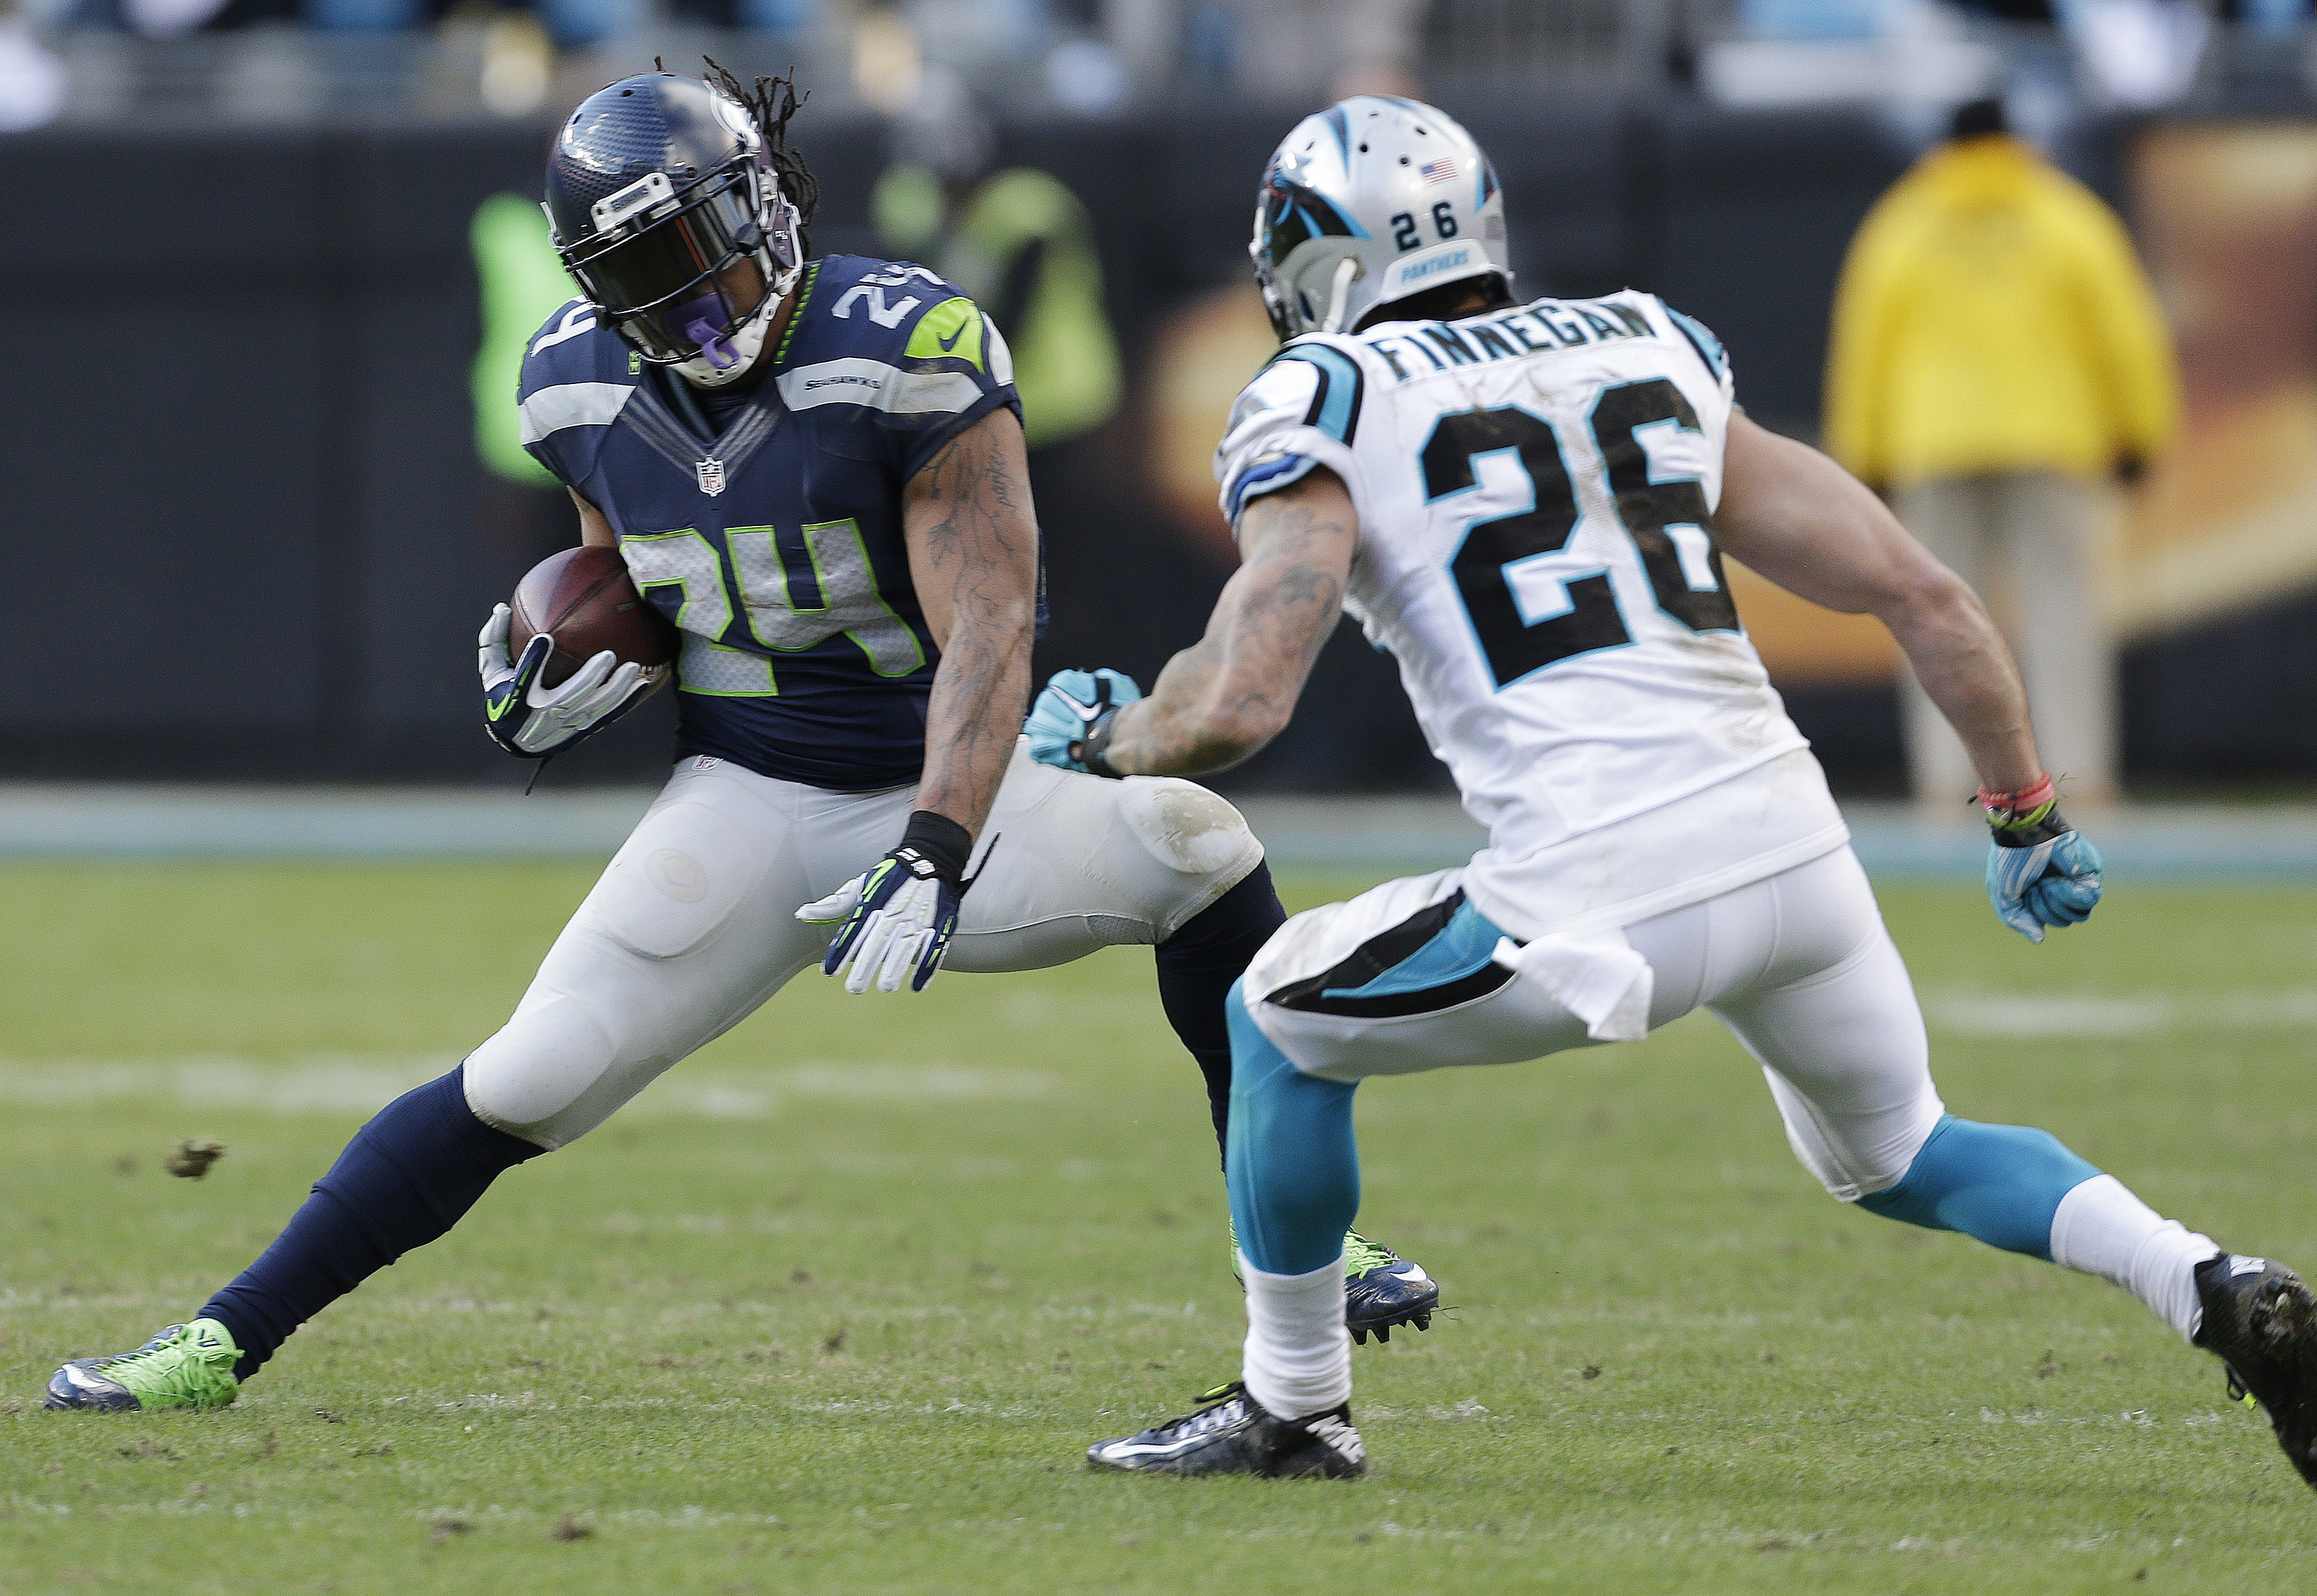 Seattle Seahawks running back Marshawn Lynch (24) moves against Carolina Panthers defensive back Cortland Finnegan (26) during the second half of an NFL divisional playoff football game, Sunday, Jan. 17, 2016, in Charlotte, N.C. (AP Photo/Bob Leverone)